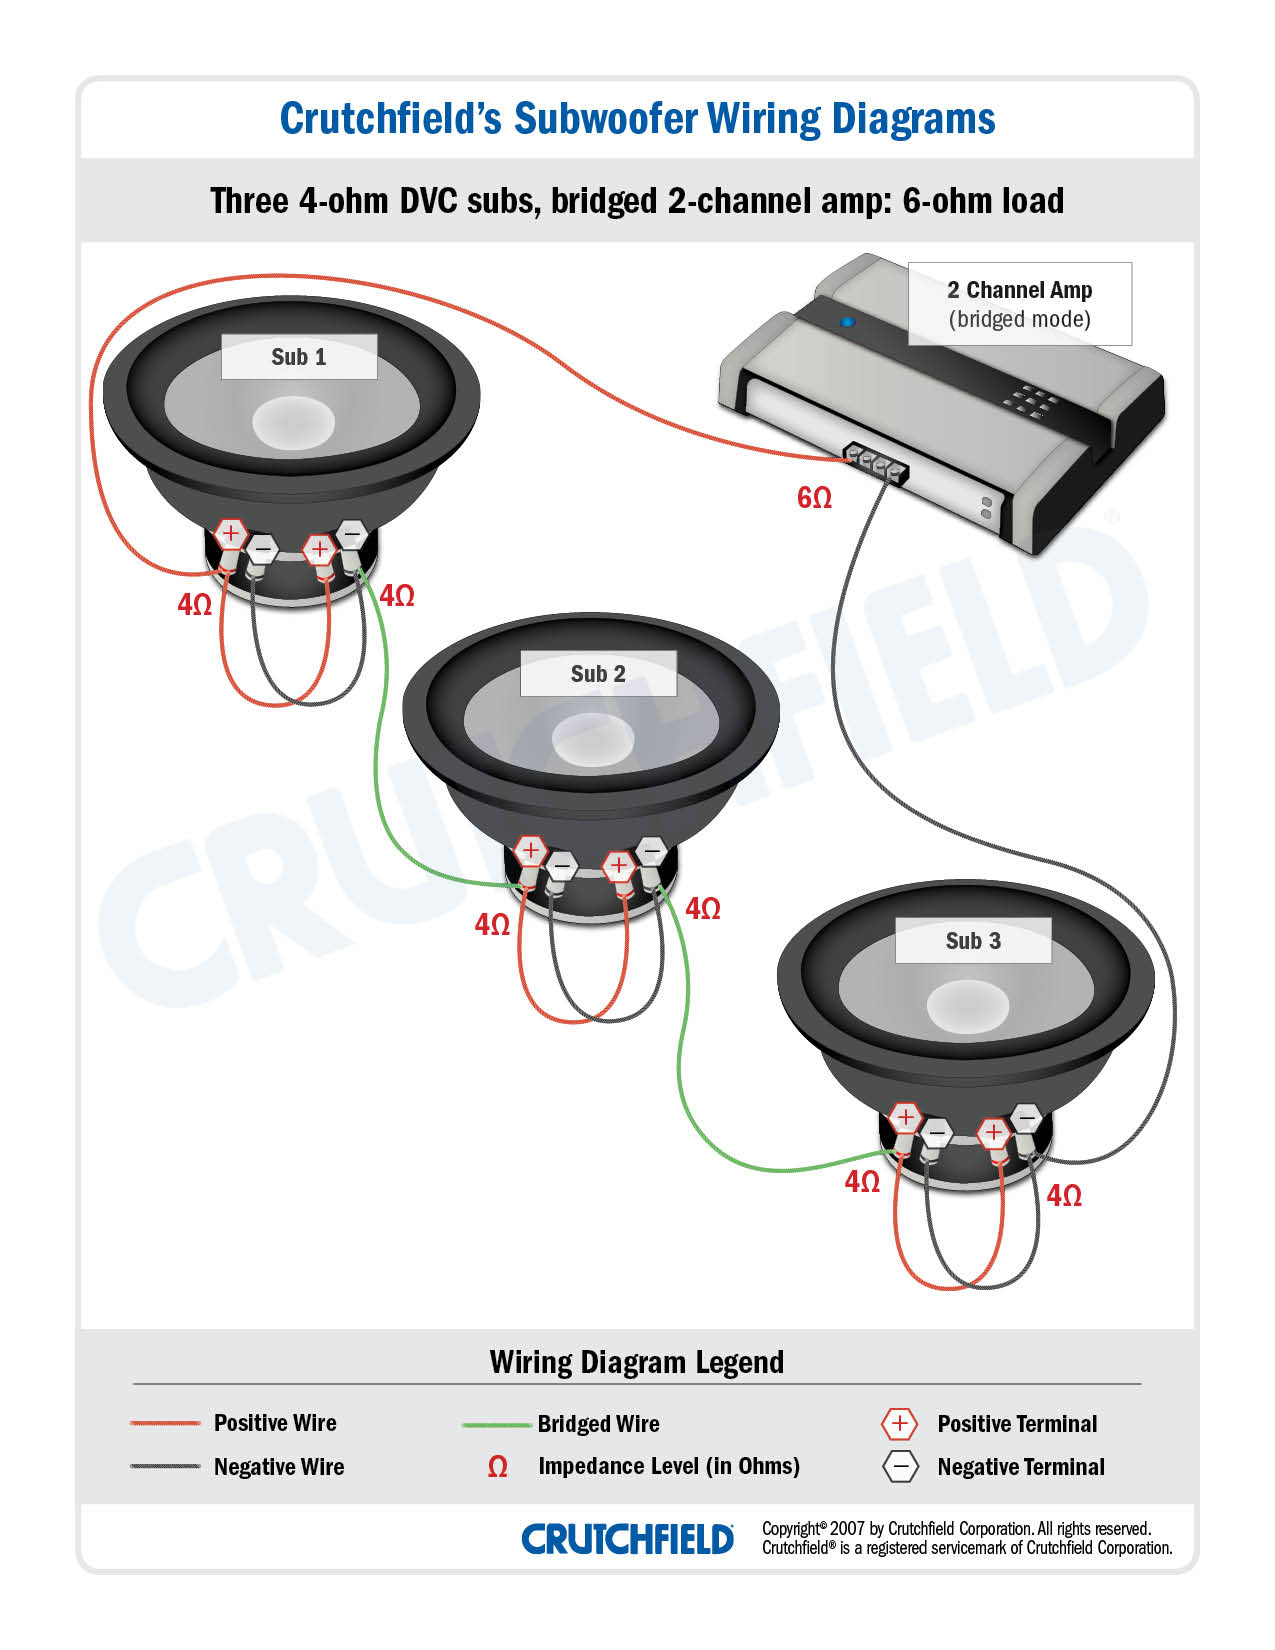 Subwoofer Wiring Diagrams — How To Wire Your Subs - Center Channel Speaker Wiring Diagram